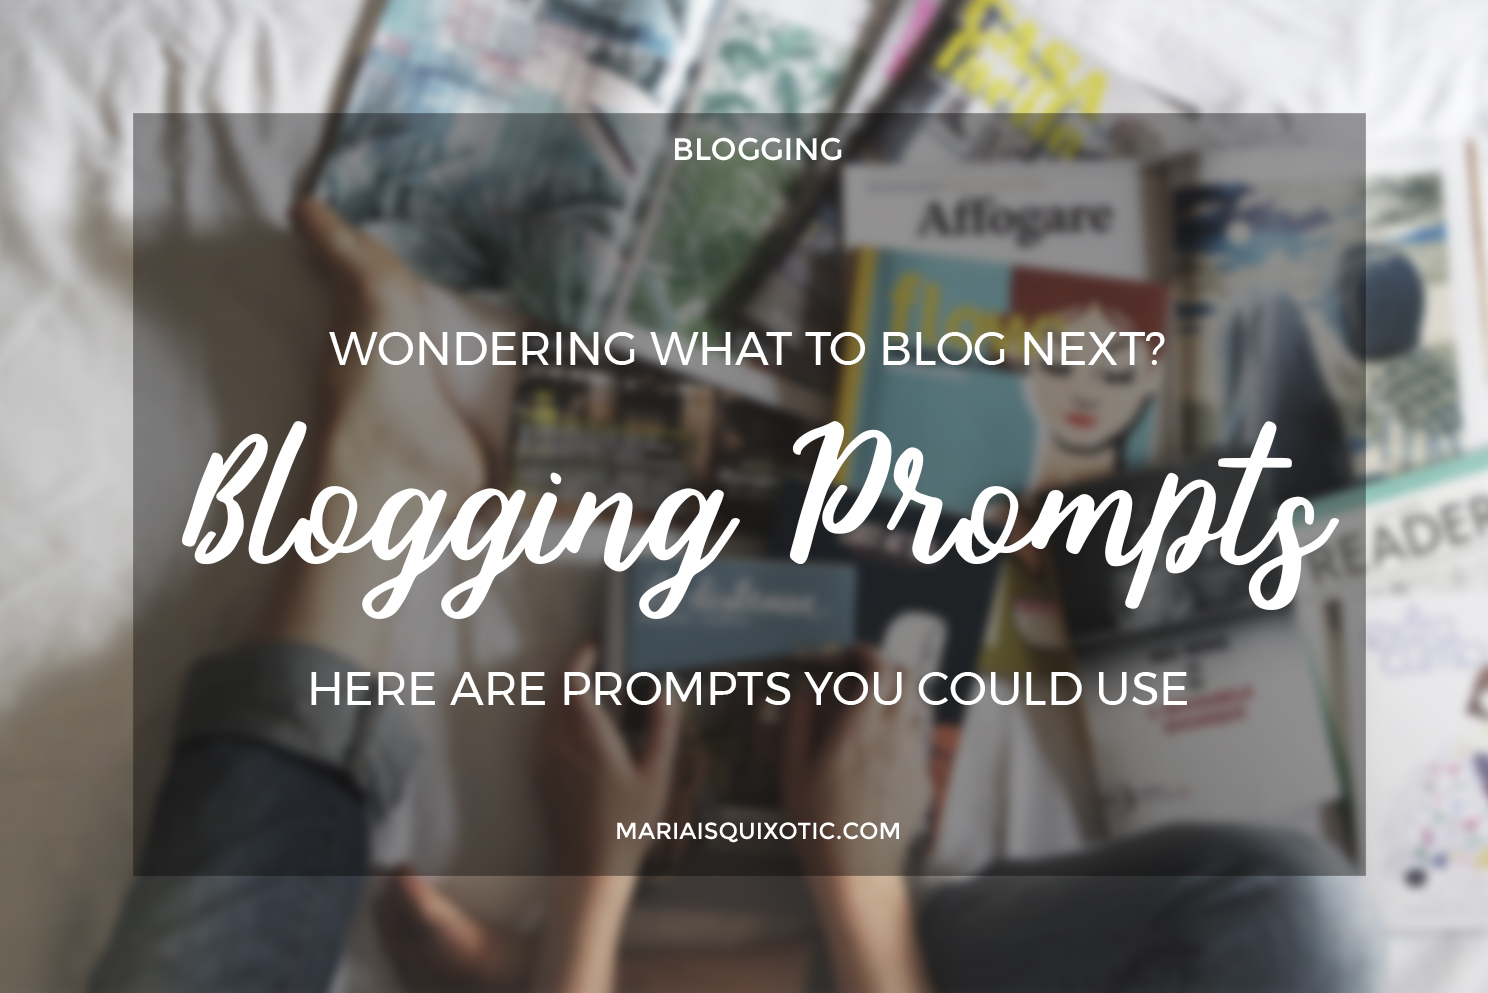 Blogging Prompts #1